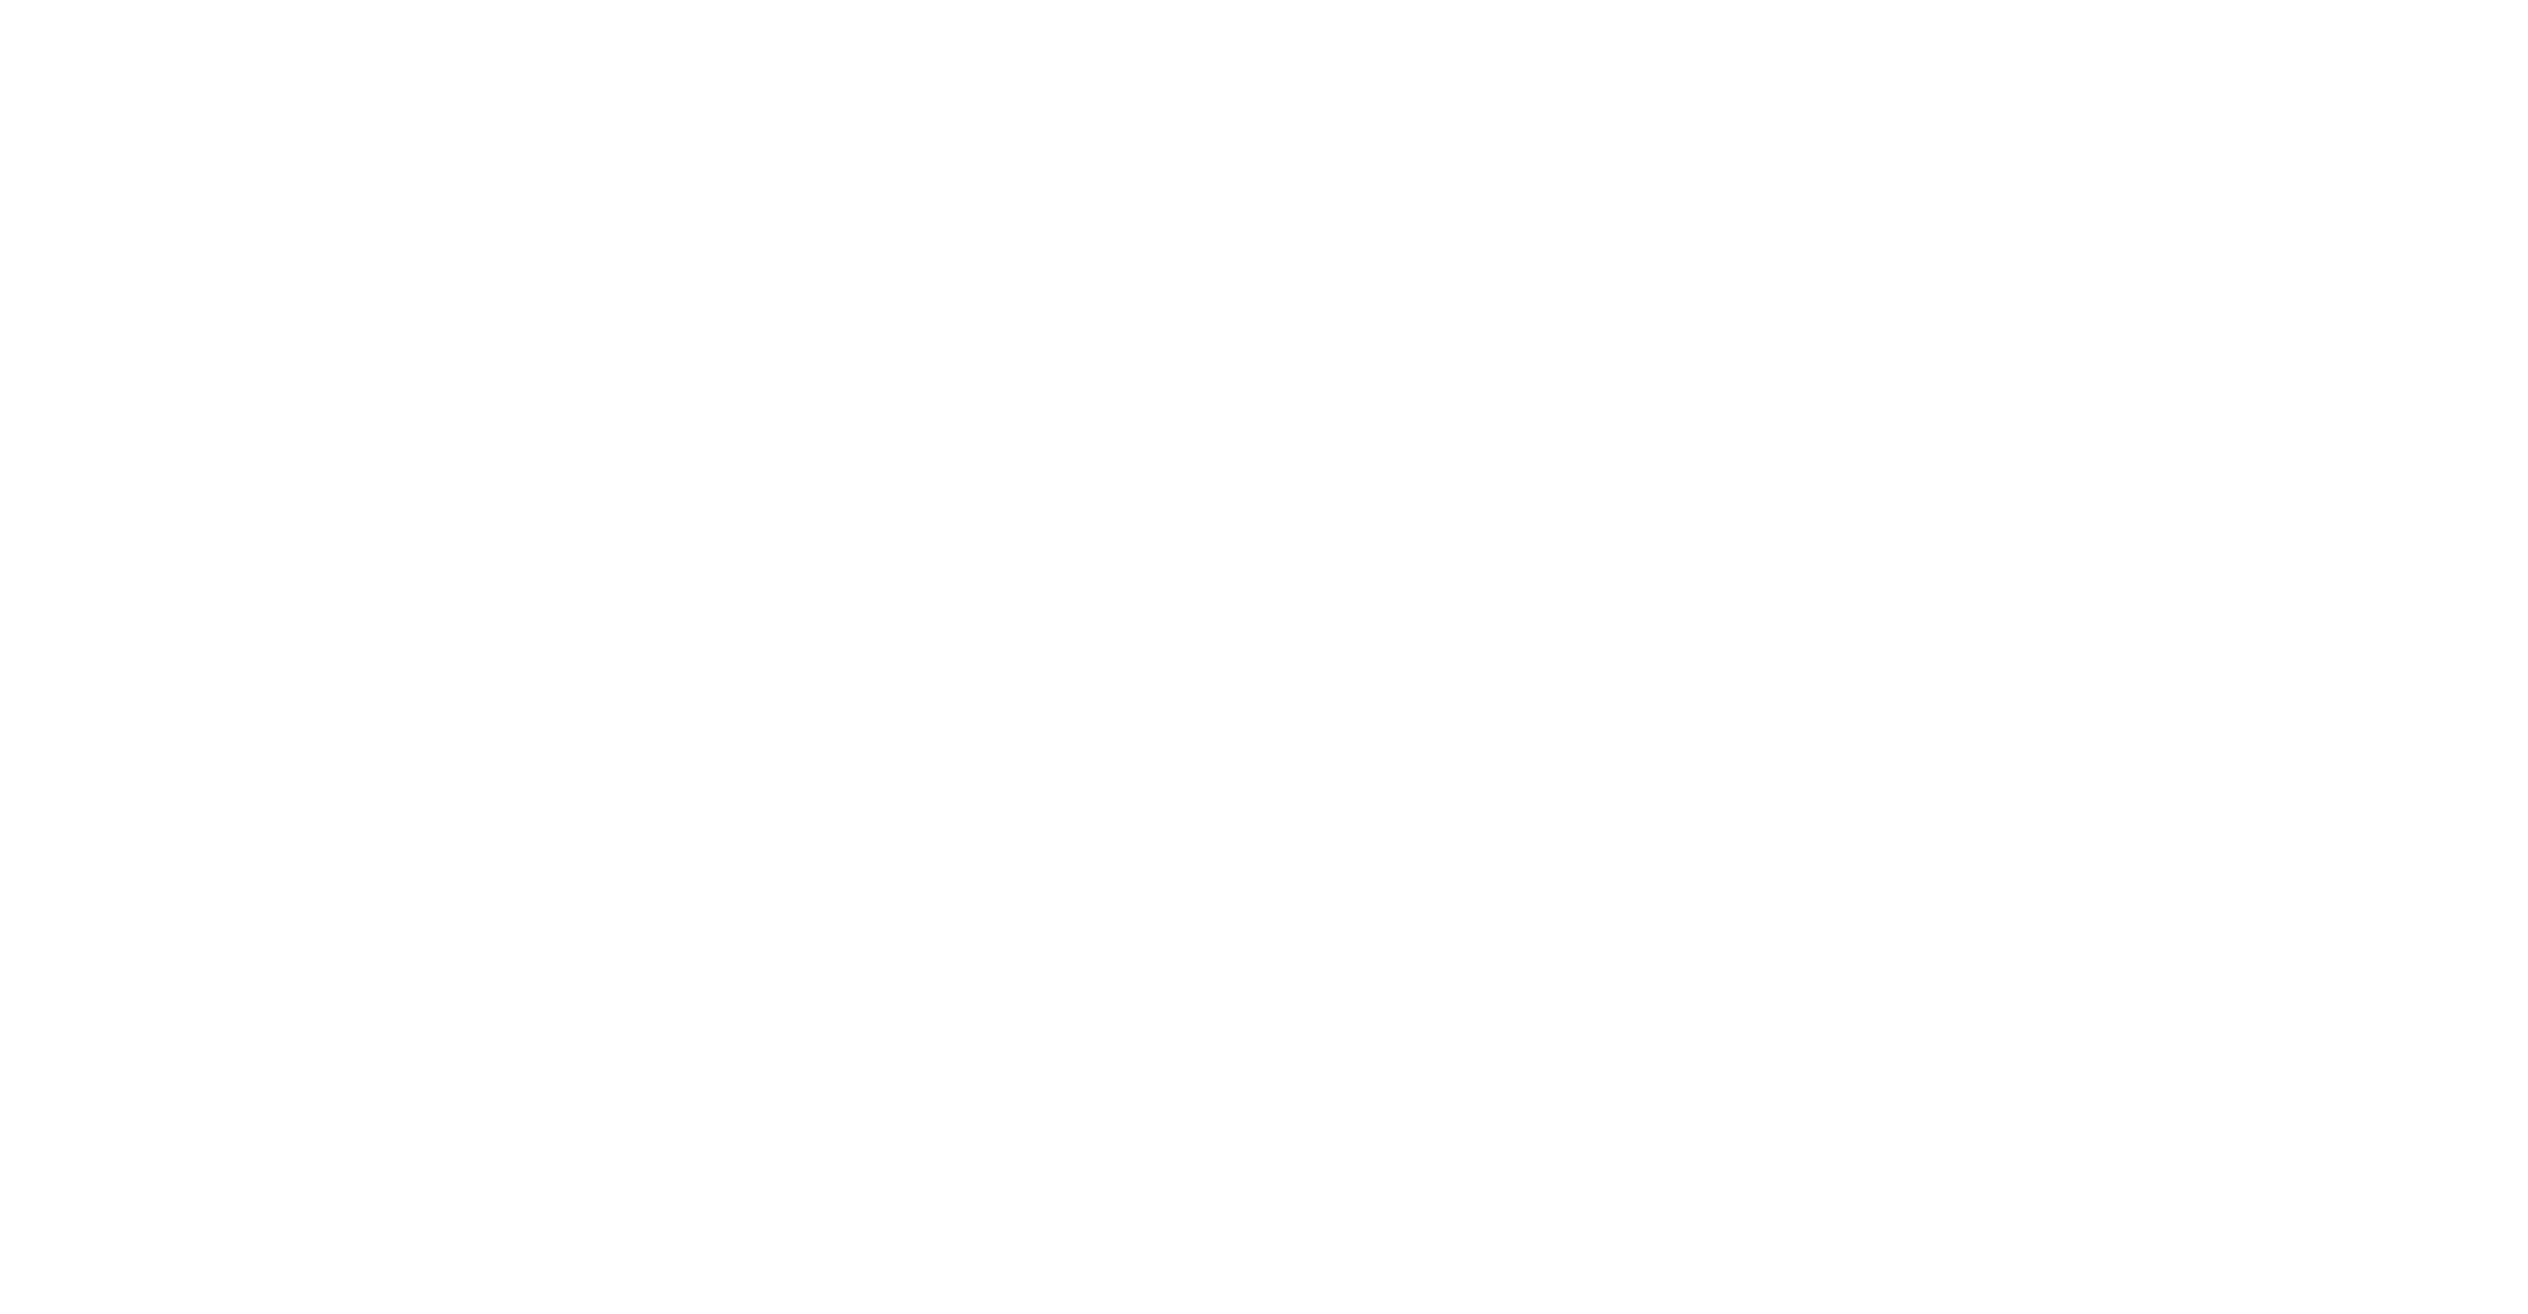 MUSIC BEHIND THE RECIPES CAMPAIGN